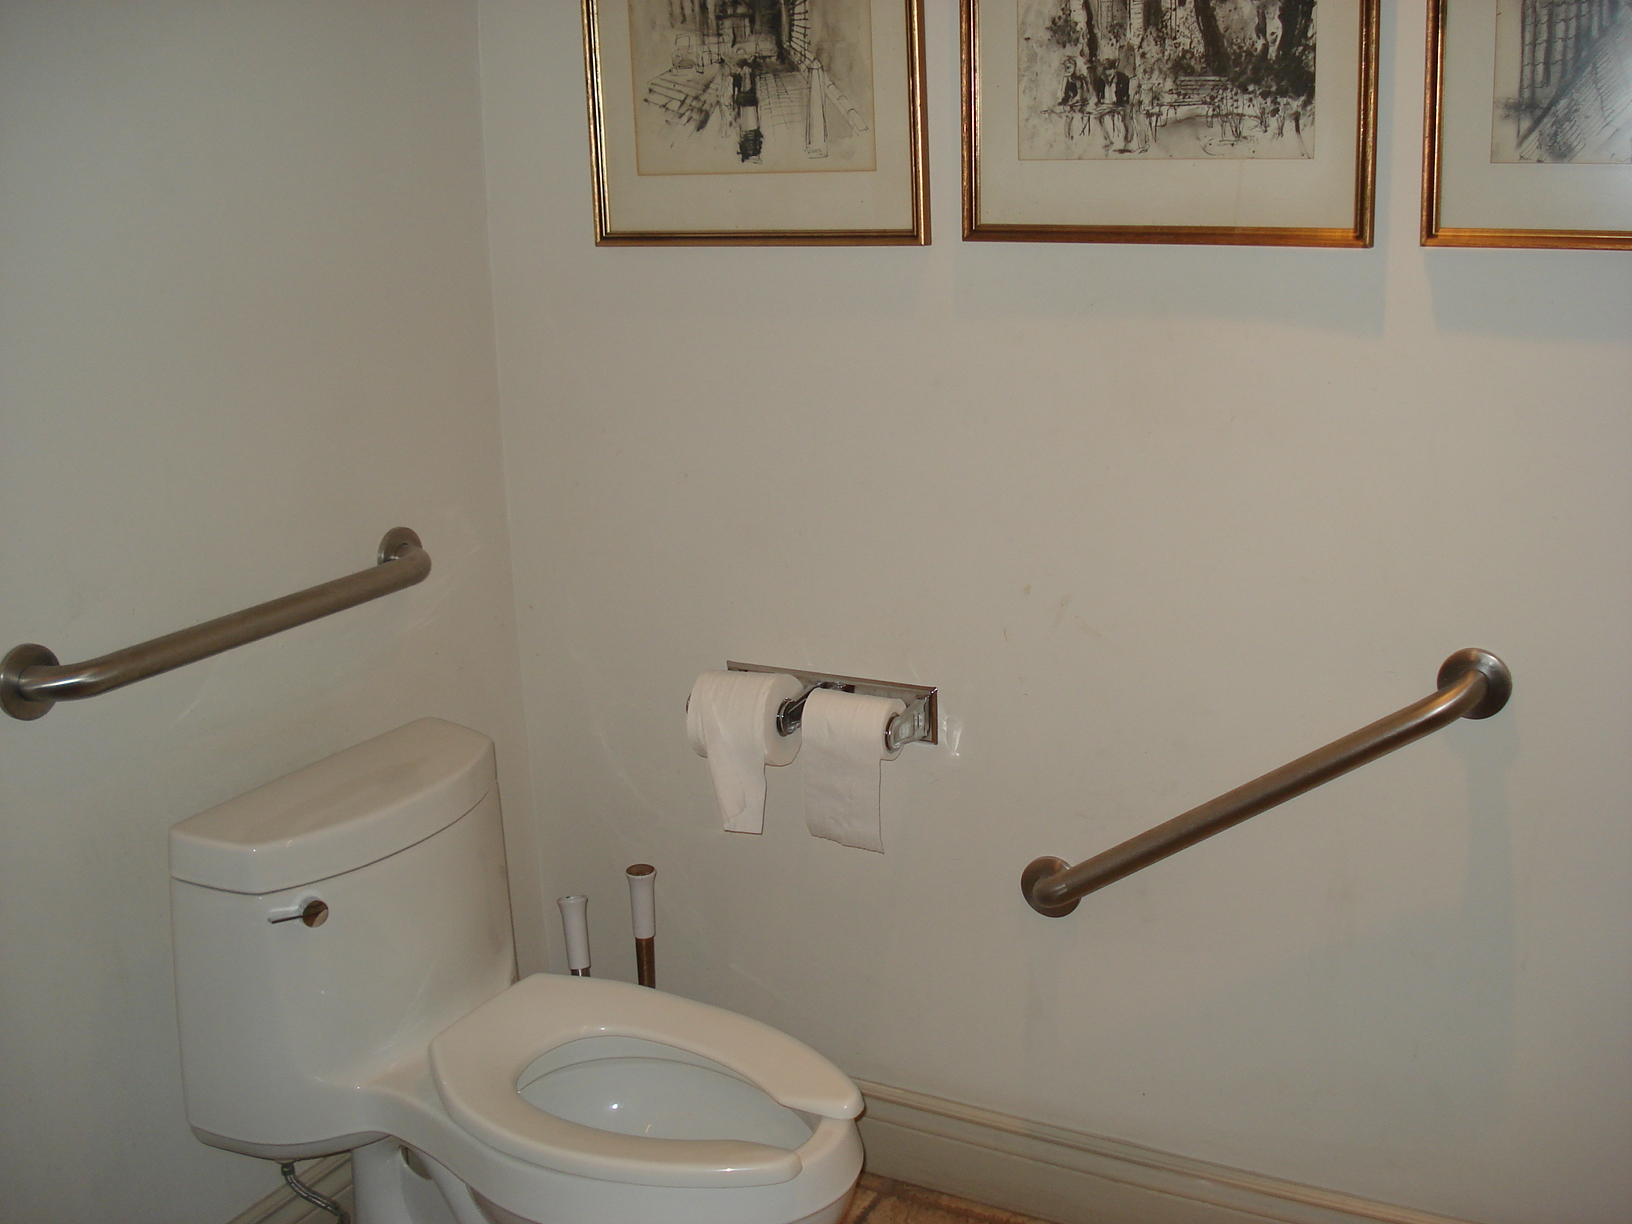 Picture of accessible washroom. Grab bars surrounding toilet.